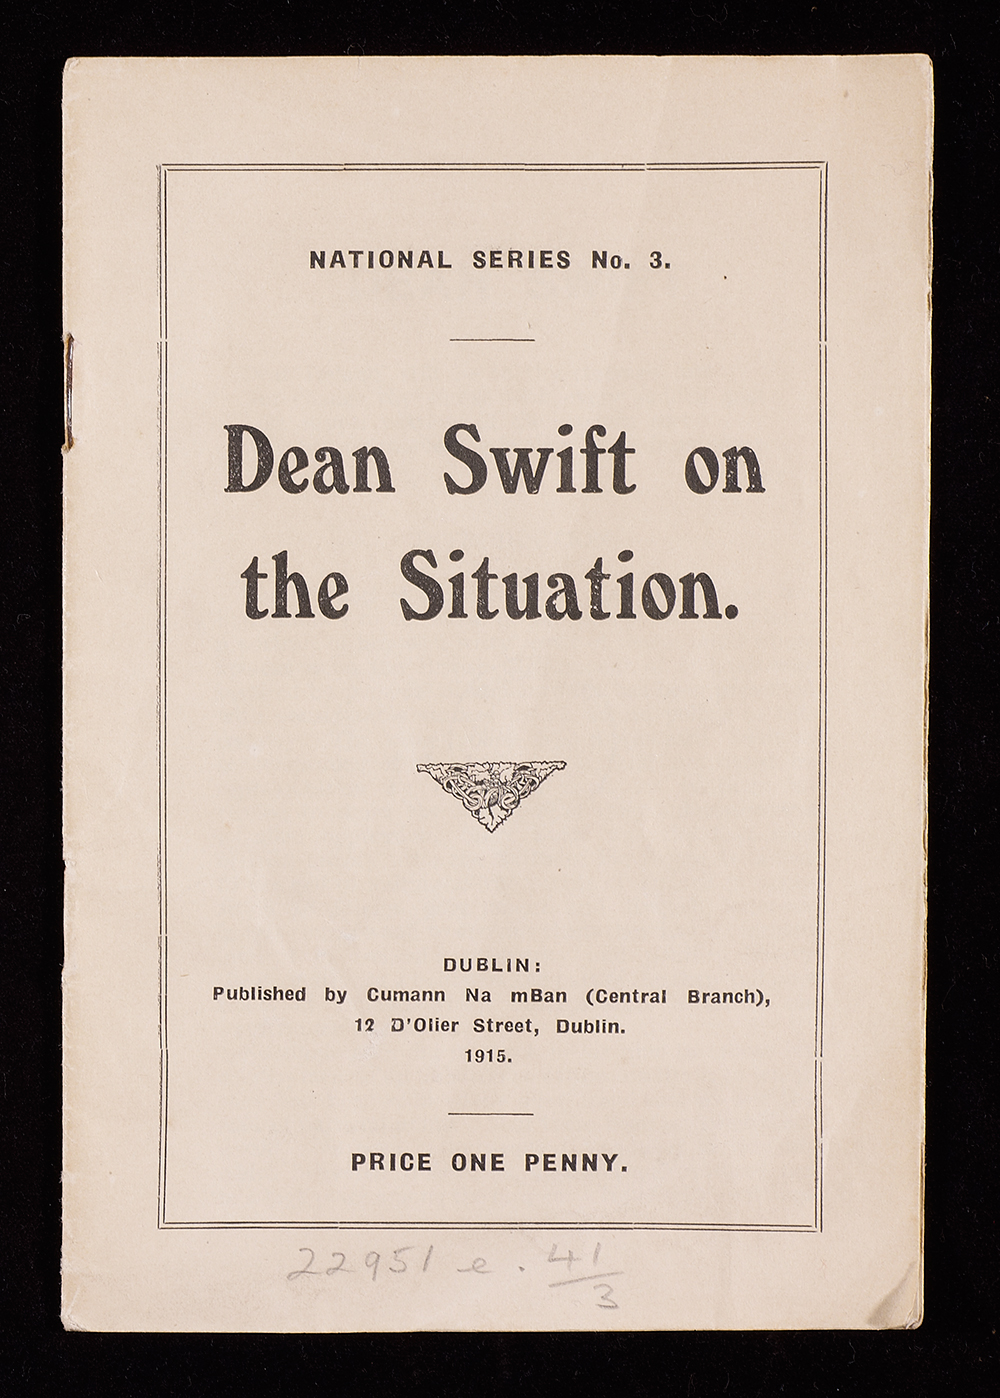 Dean Swift on the situation pamphlet